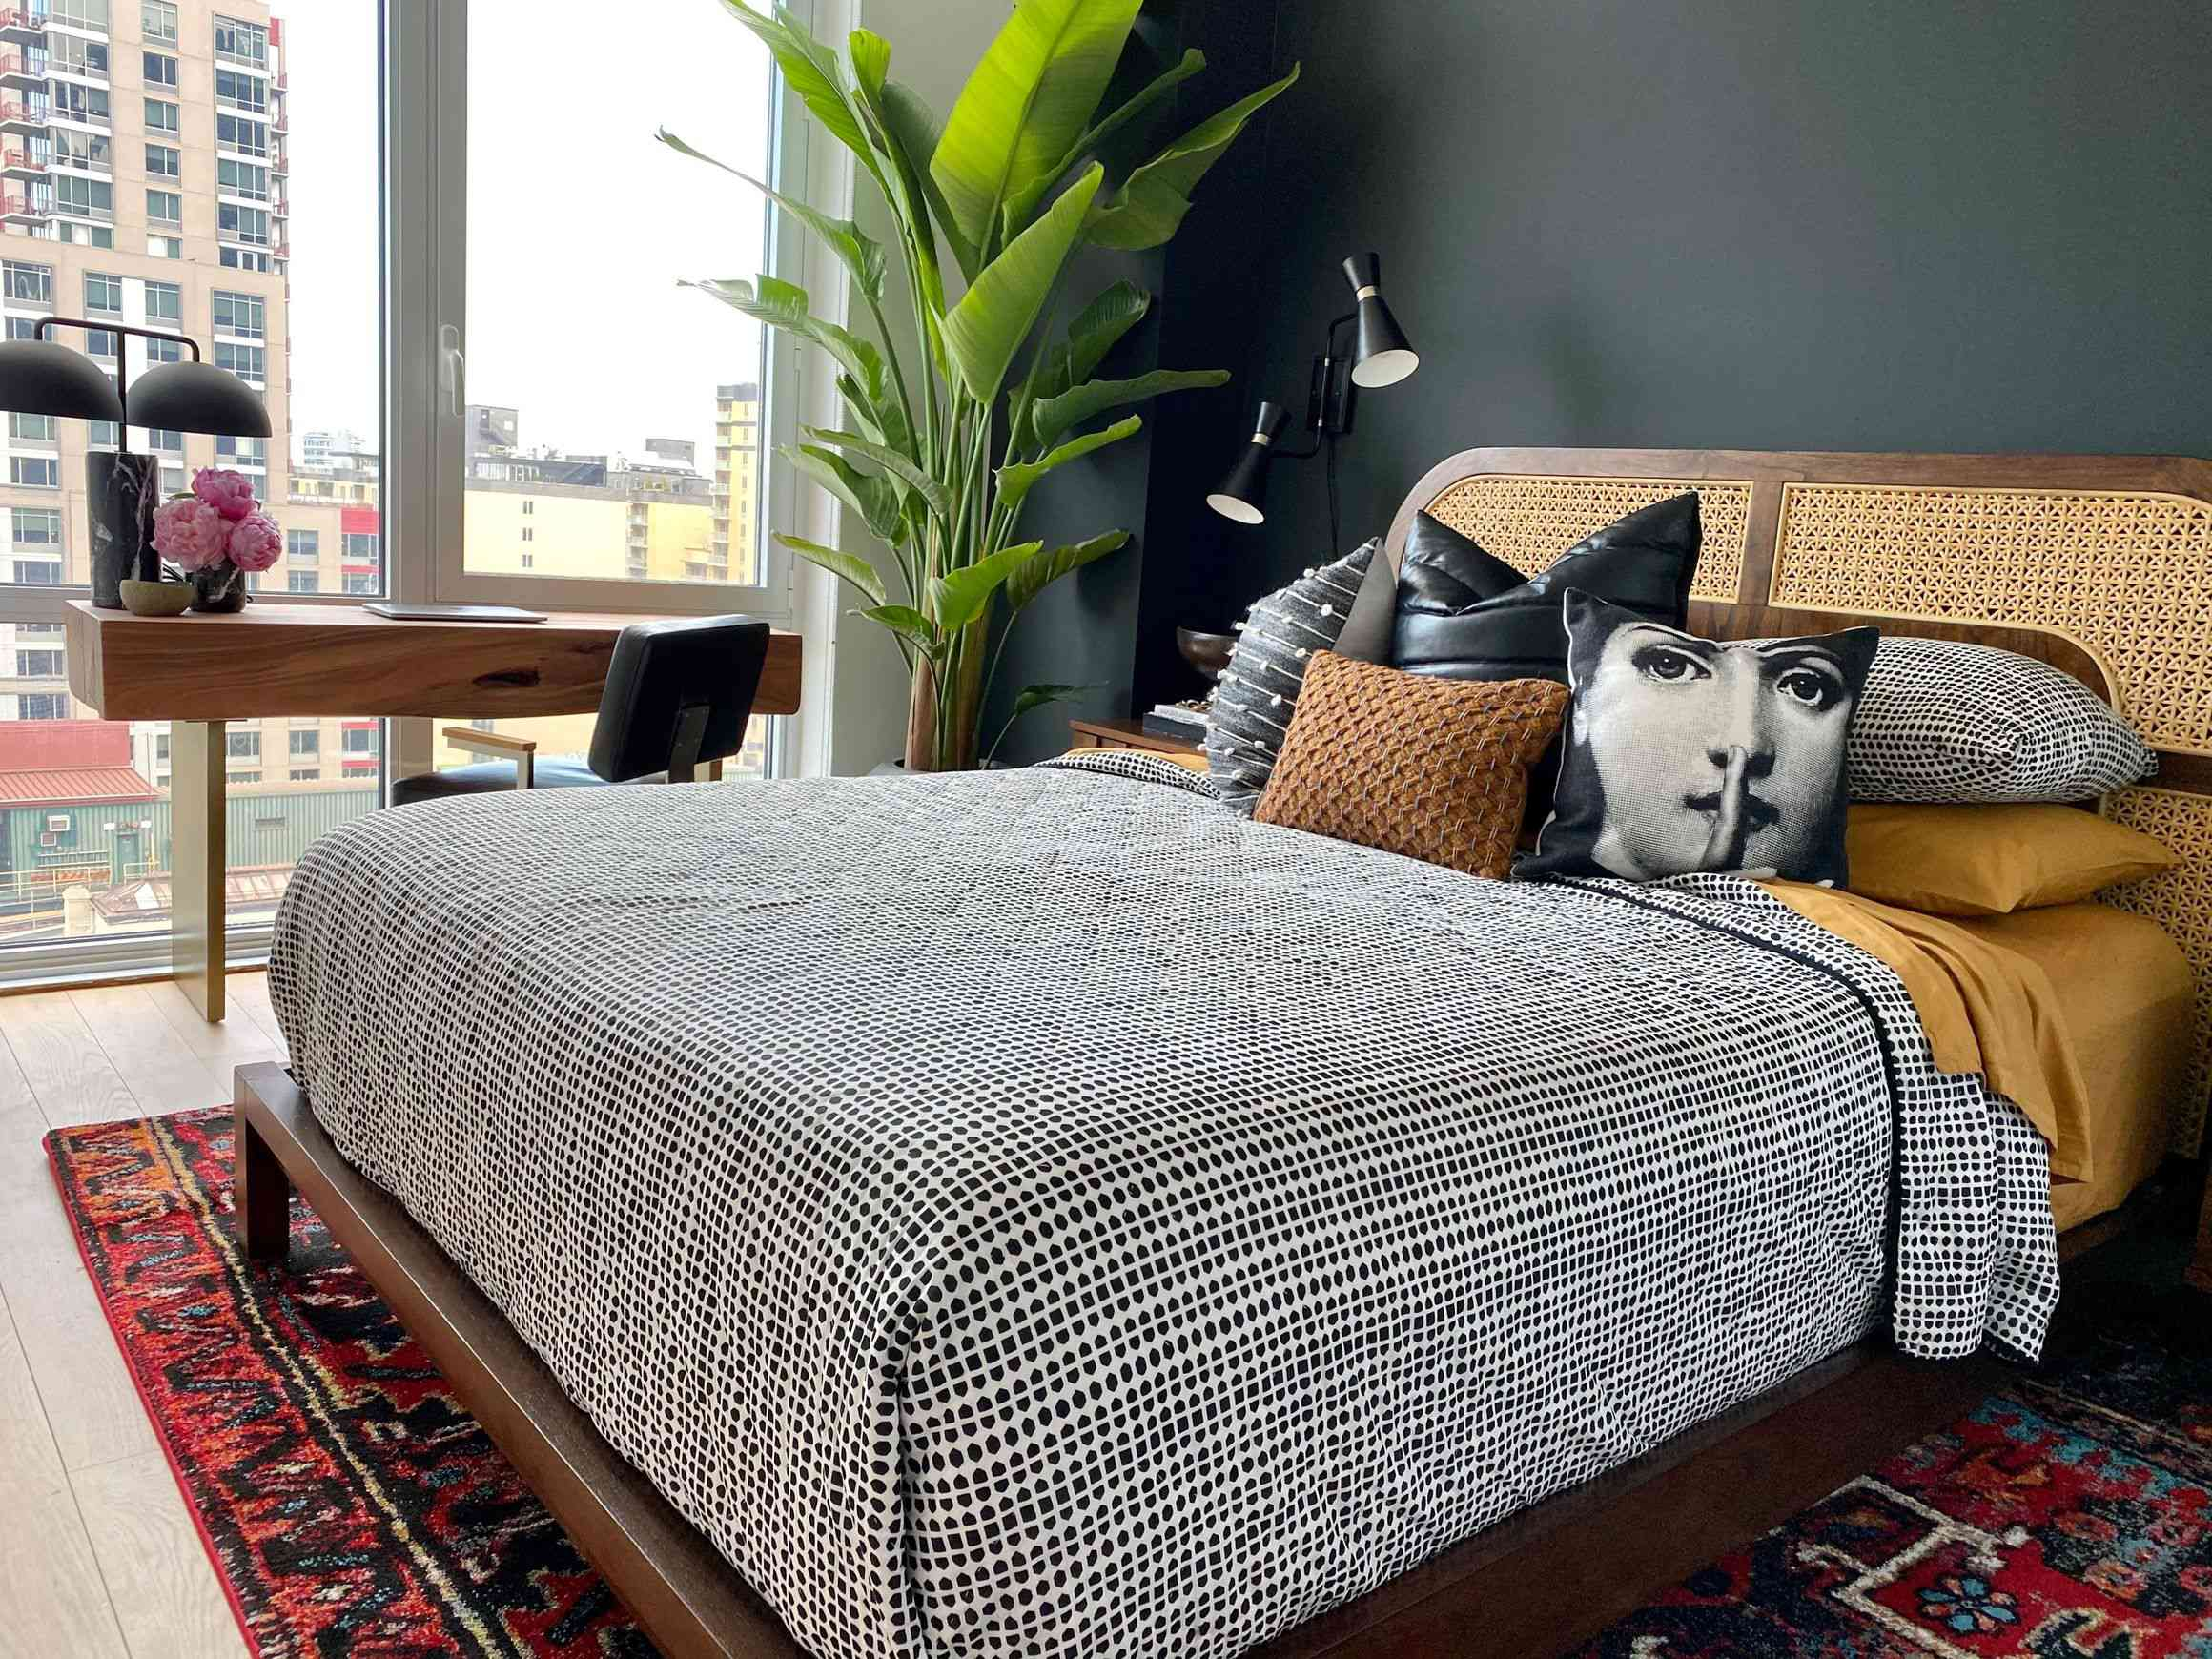 bedroom with black accent wall and open windows, city view